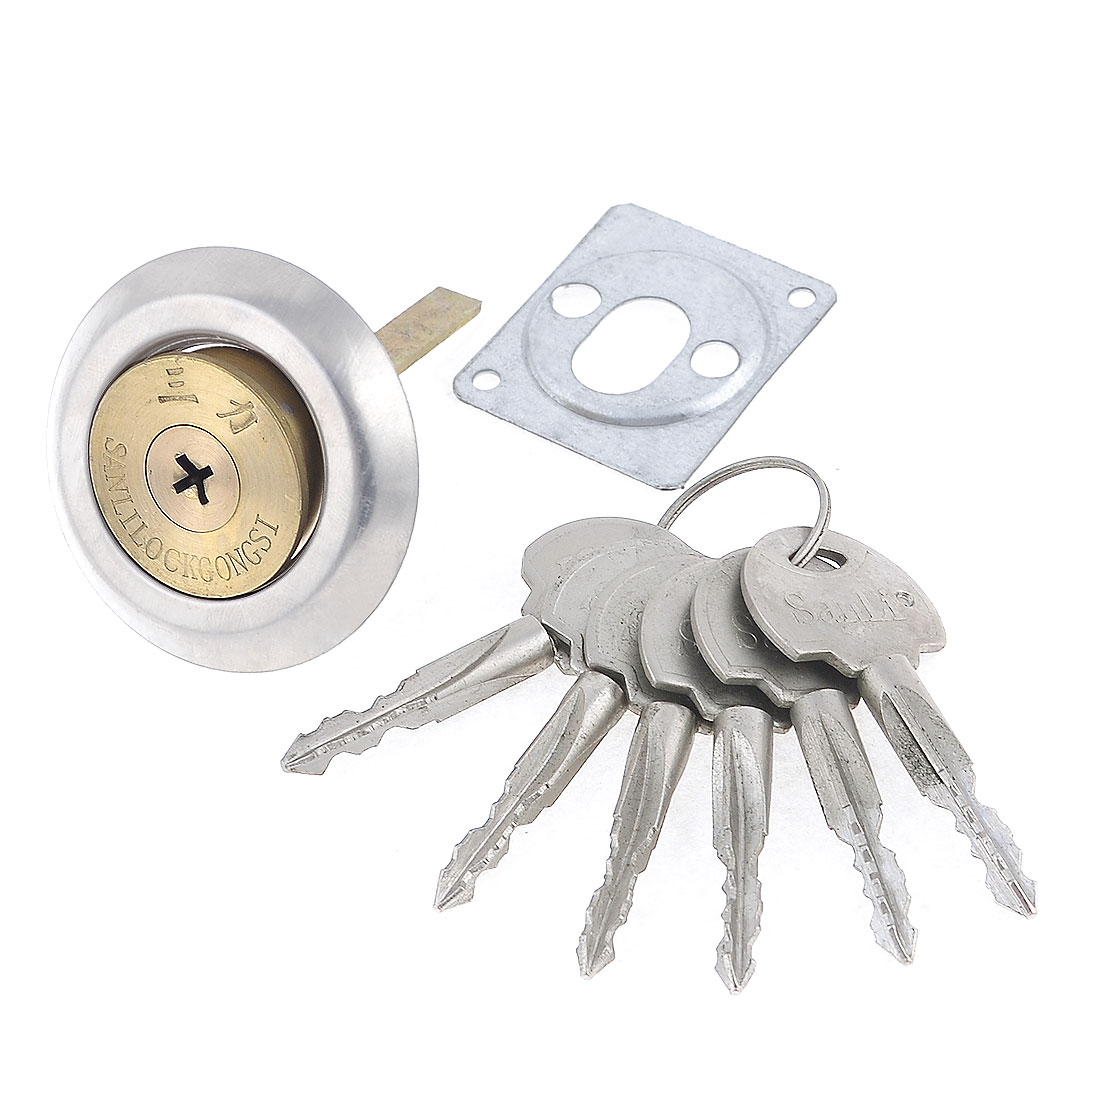 Home Brass Screw Gold Tone Security Cabinet Door Lock w 6 Metal Keys